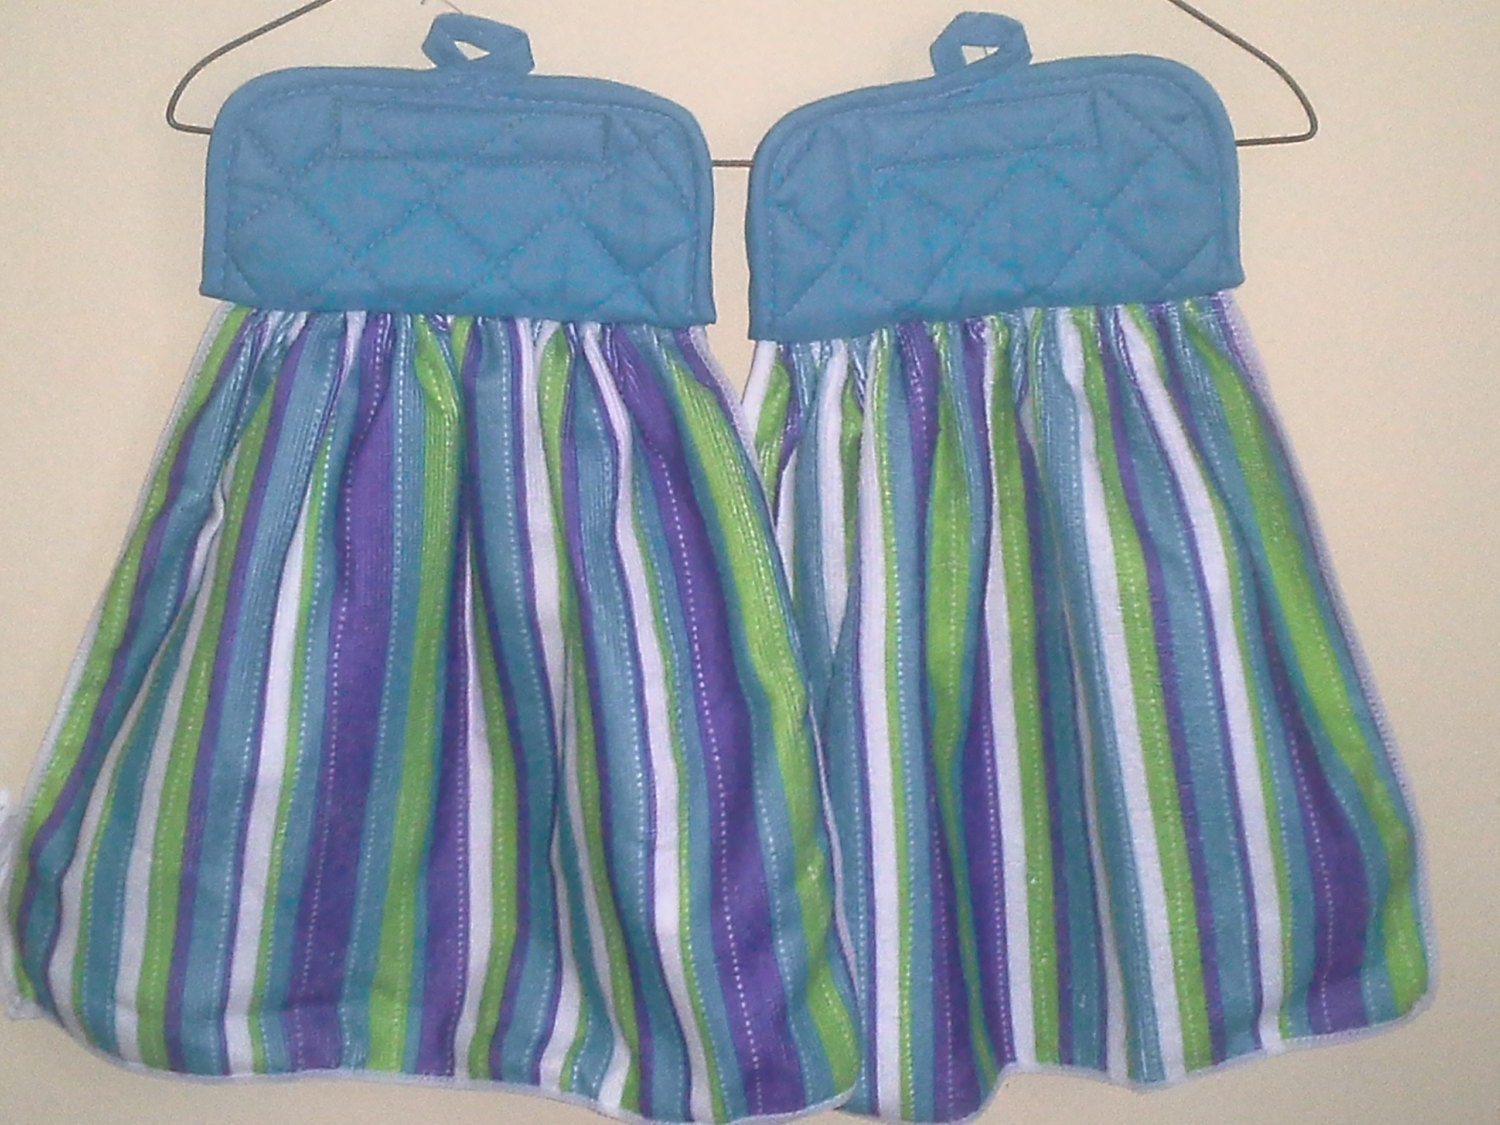 Set of TWO Velcro Hanging Dish Towels/Pot Holders Teal Blue and Stripes